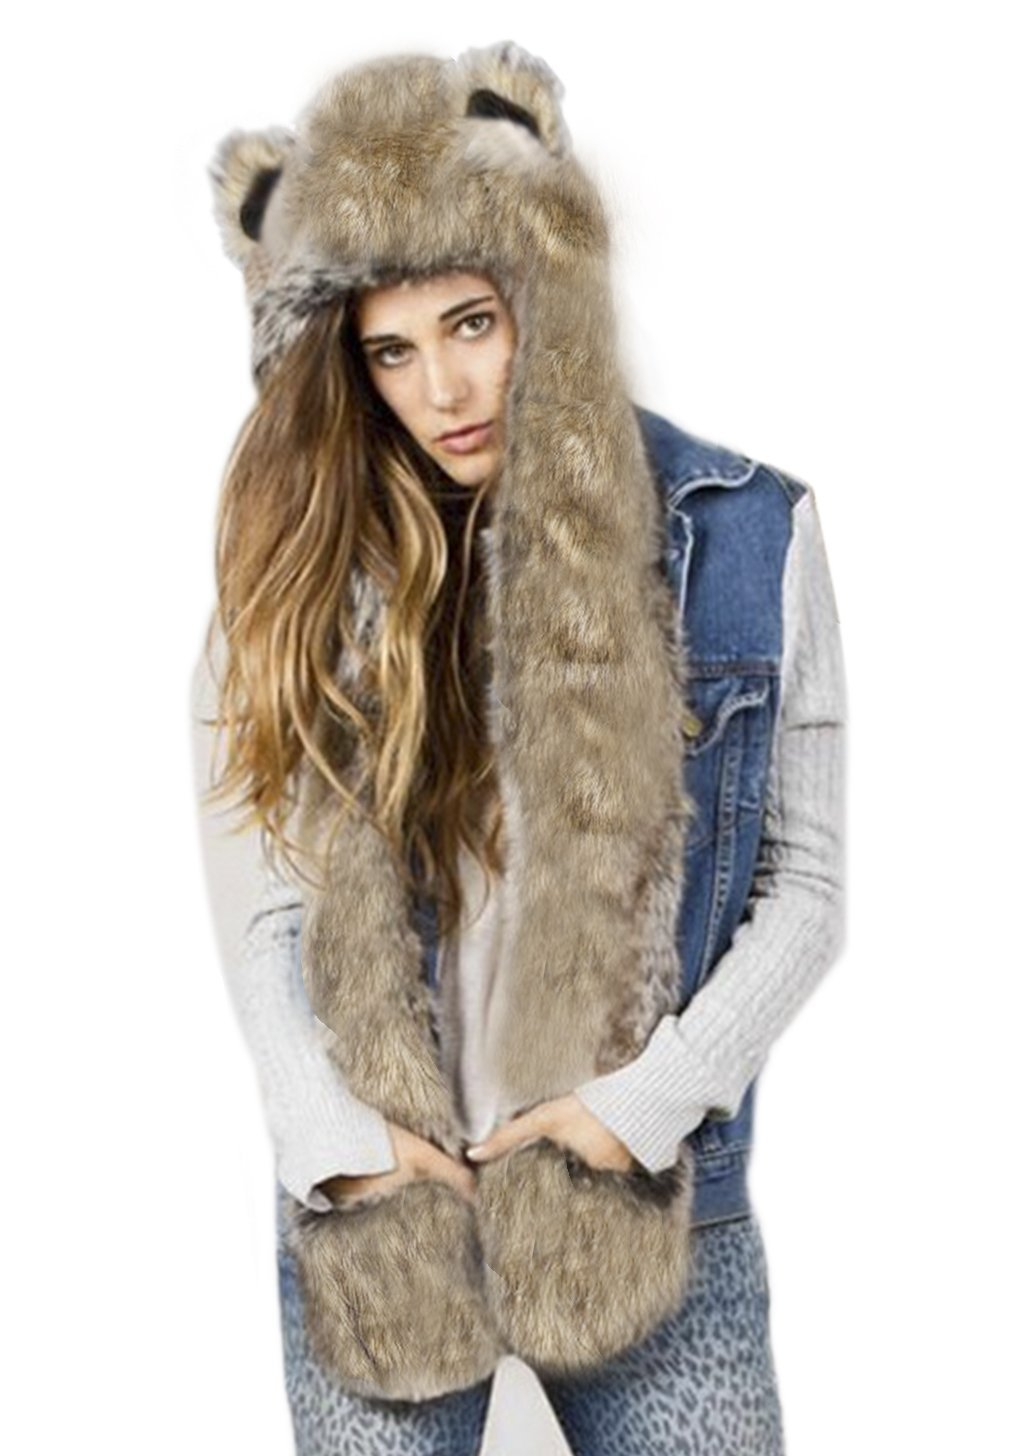 a1d749ffc 3 in 1 Cartoon Full Animal Faux Fur Hood Hoods with Ear Flaps Scarf Spirit  Paws Mittens Gloves Set Cute Anime Furry Hoodie Hat with Pocket Gloves ...